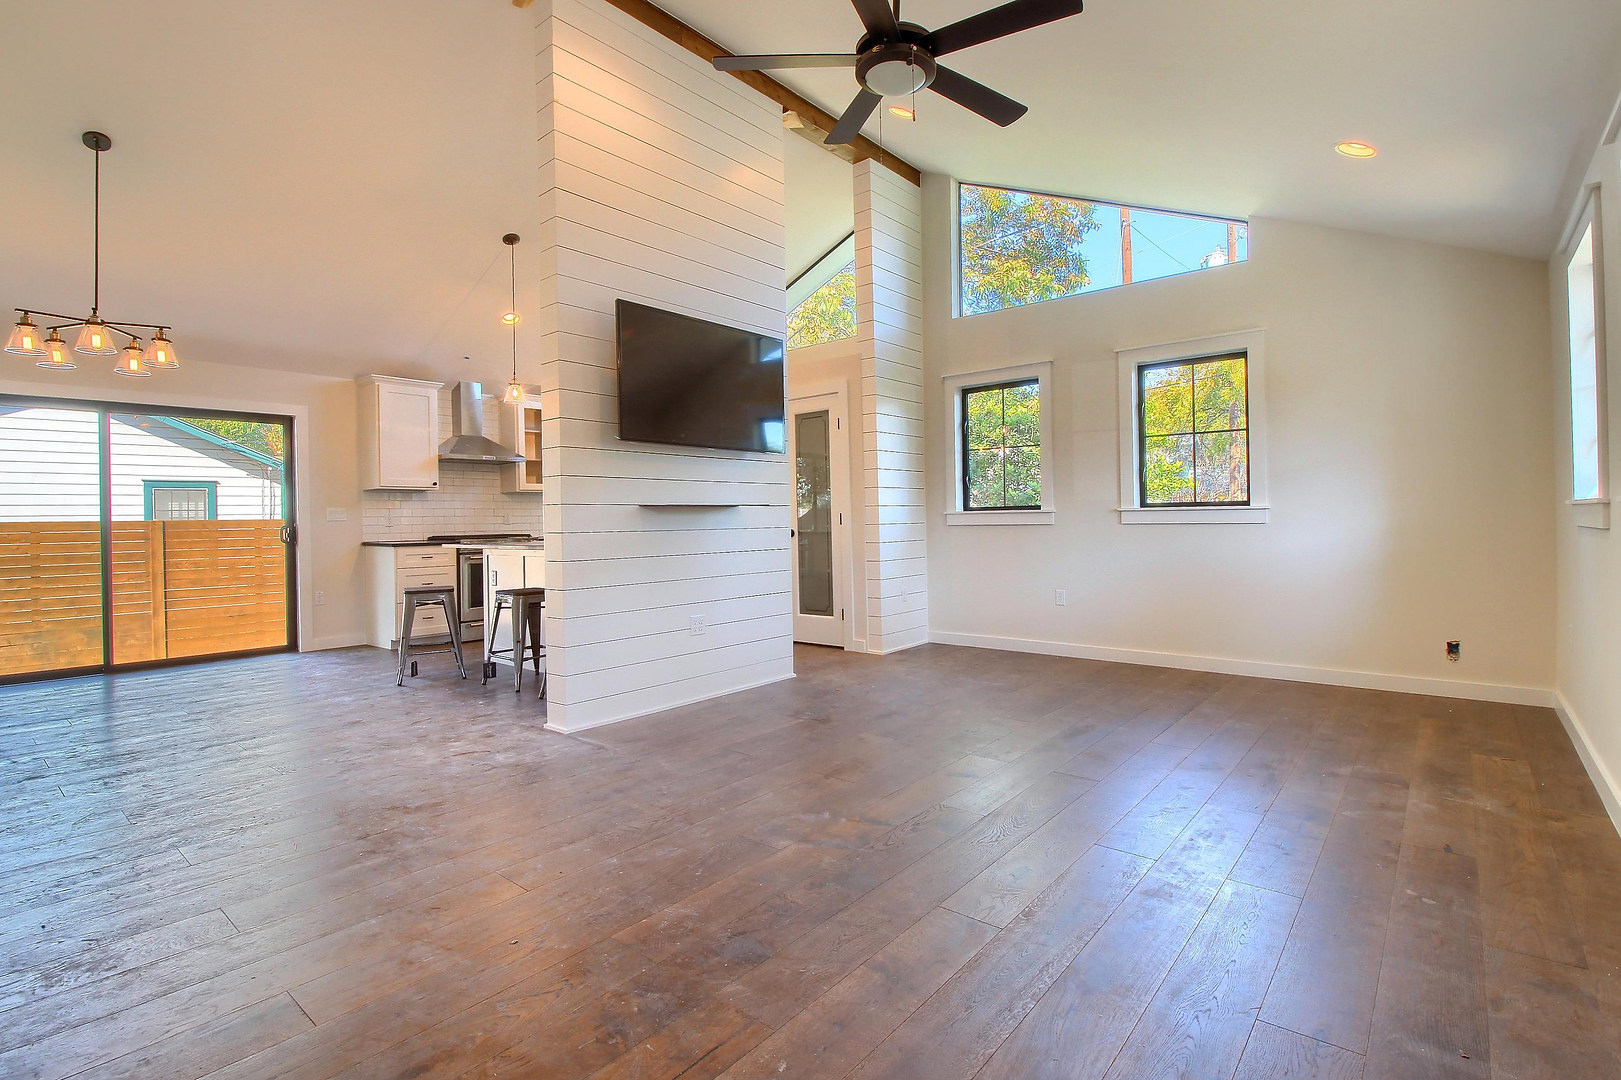 Home Renovation Accent Wall on Bouldin in Austin, TX